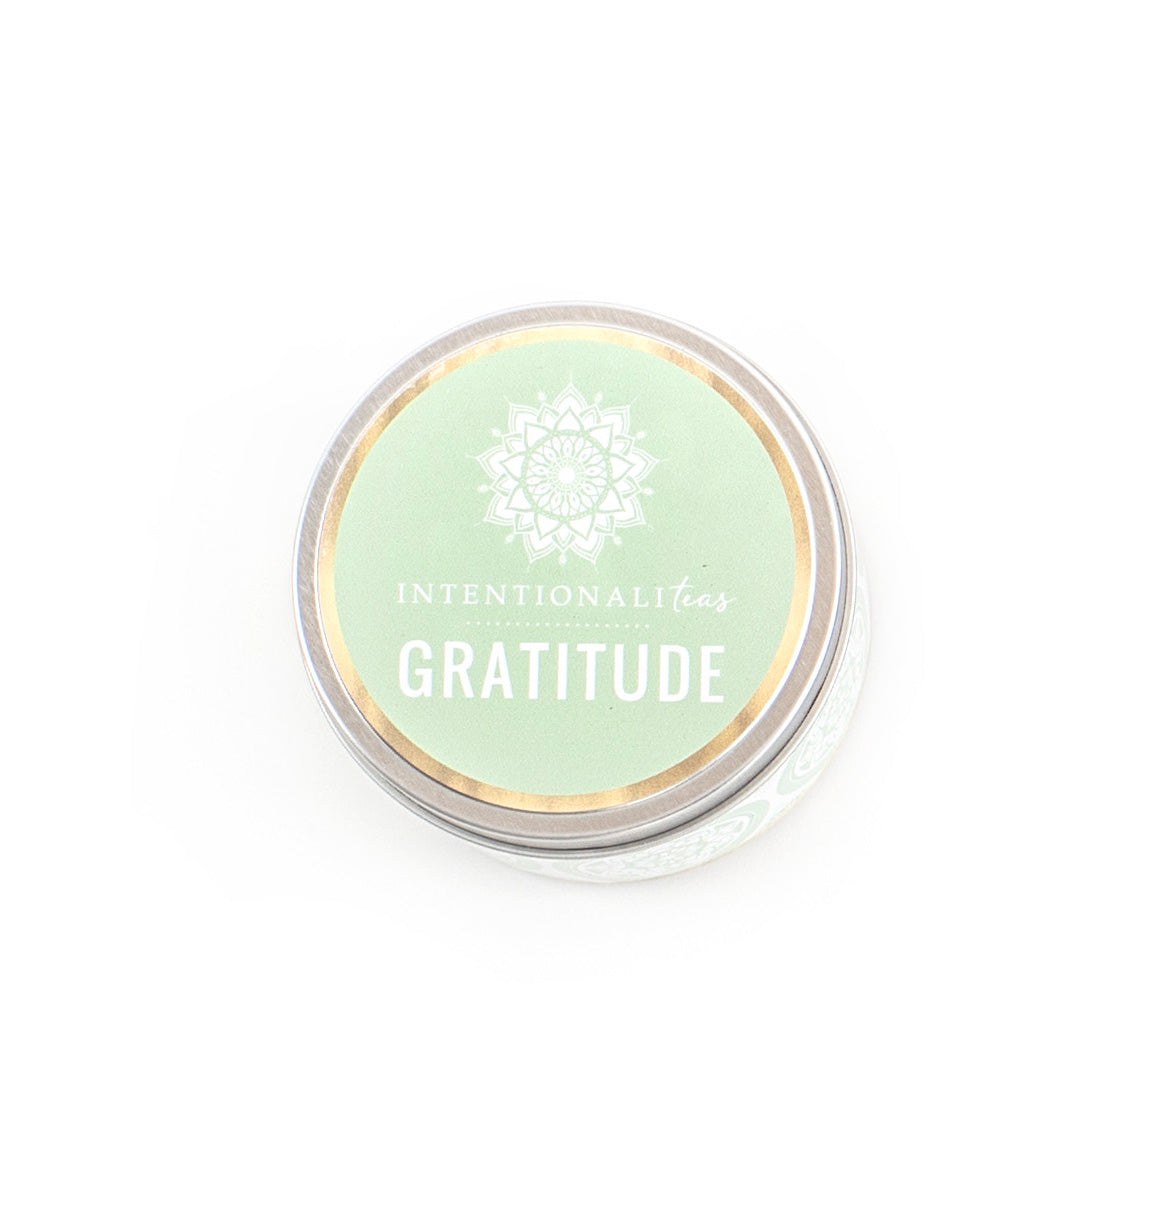 Aromatherapy Gratitude Candle